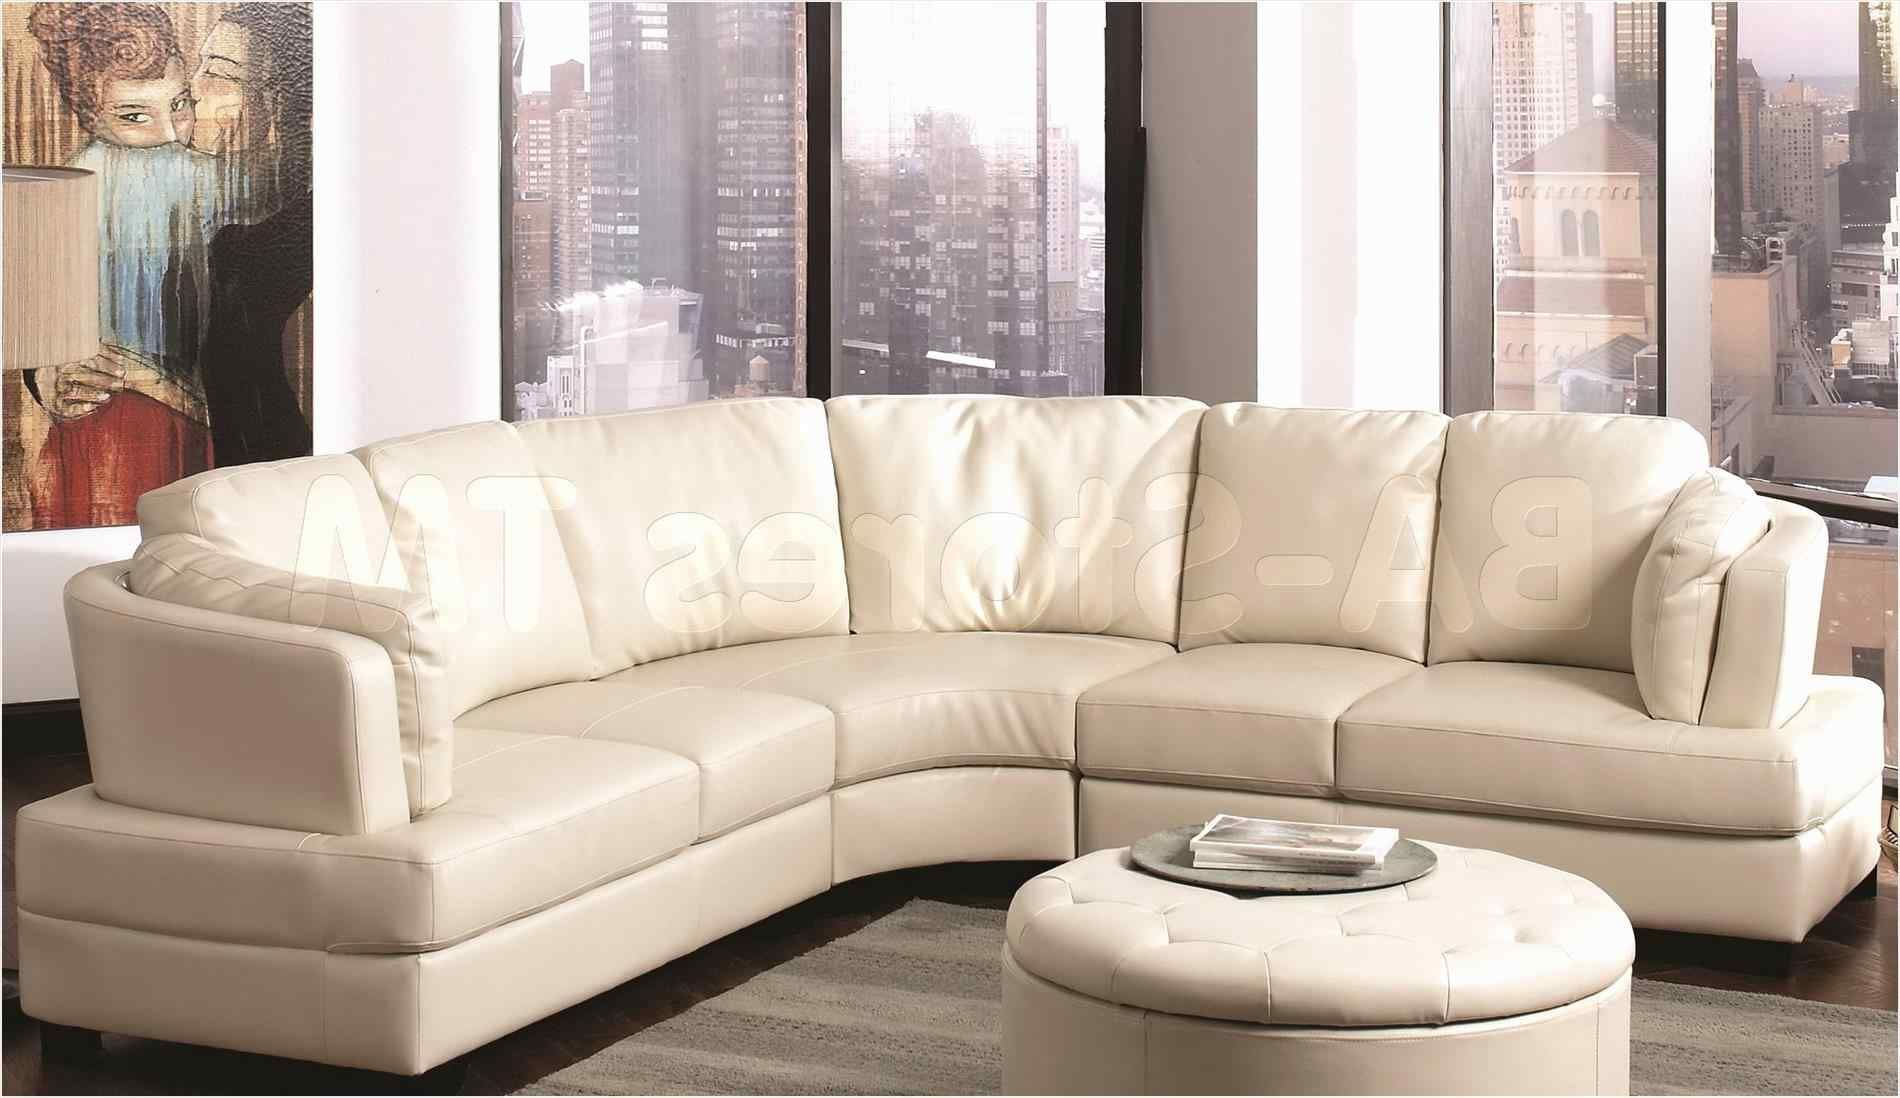 Spaces Leather Sectional Sofa For American Living Room Style With Rhantiqueslcom Small Space Modern Furniture Sofas Rhnanobuffetcom Small Curved Sofas For Small Leather Sectional Sofas Leather Couch Sectional Leather Sofa Set